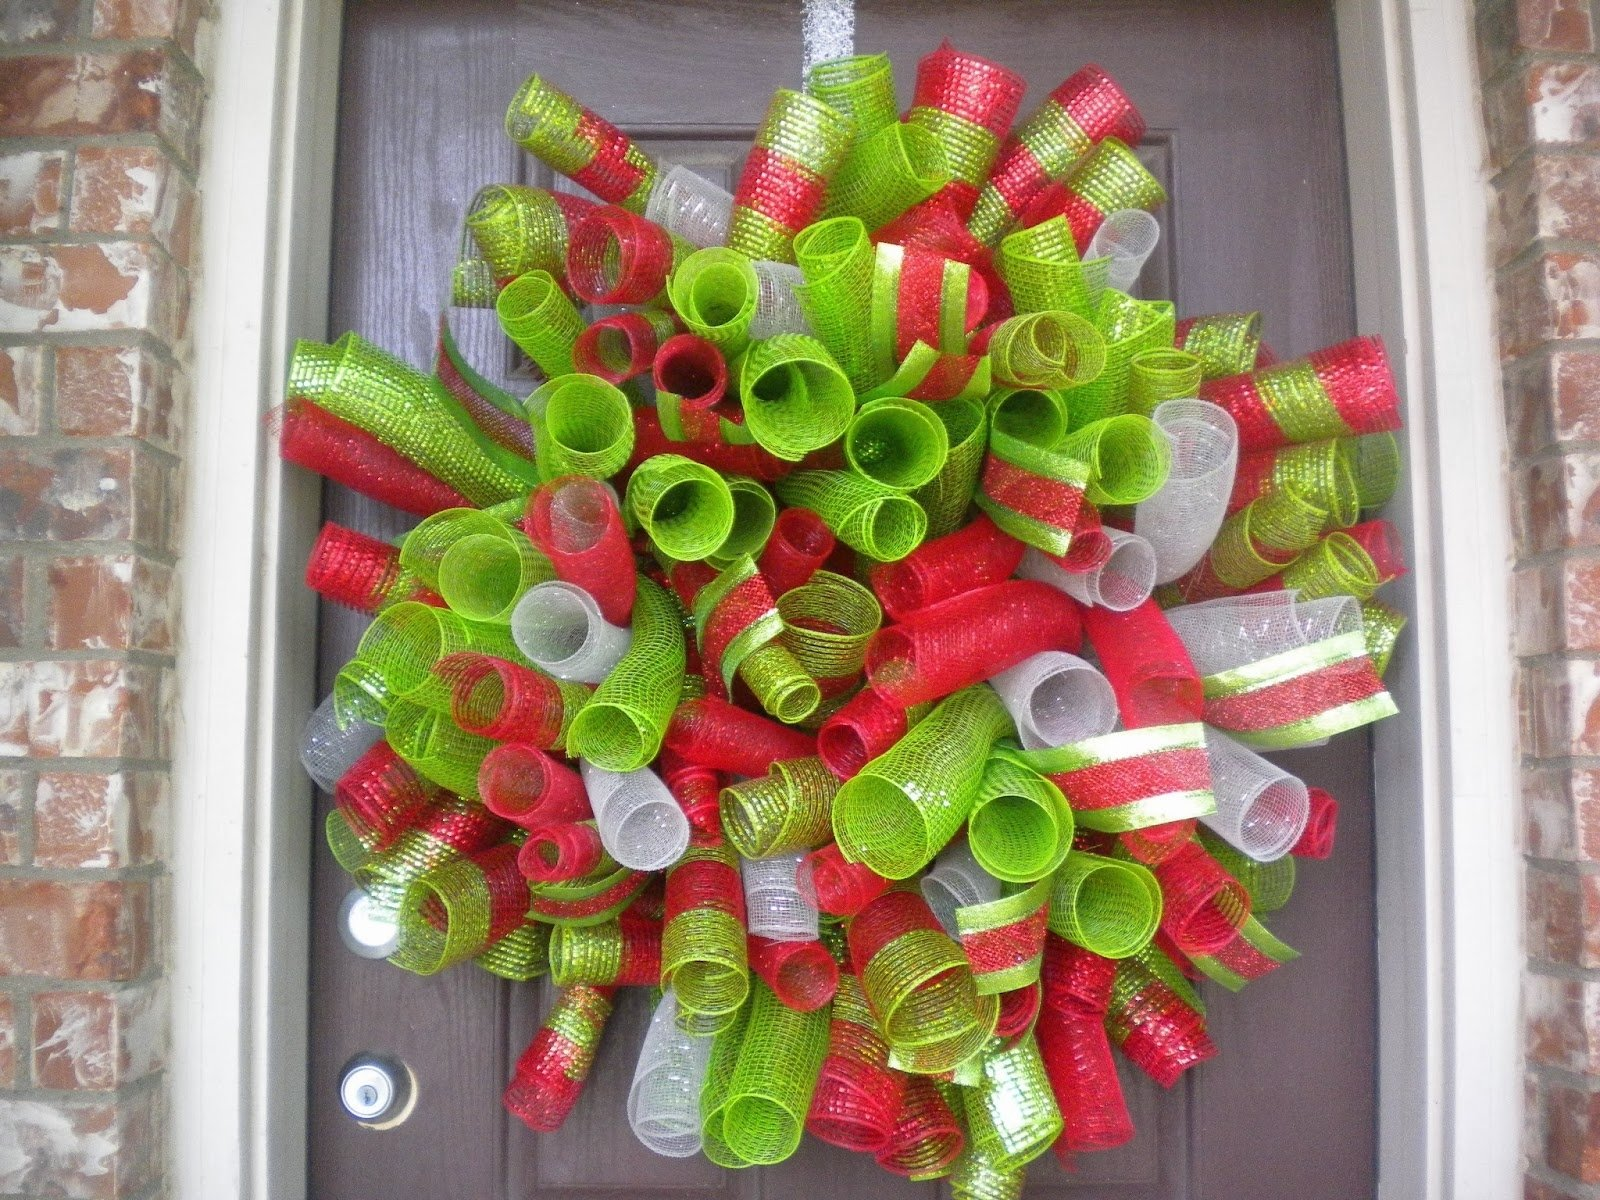 10 Ideal Deco Mesh Christmas Wreath Ideas diy christmas deco mesh curly snowman wreath 2013 2 2020